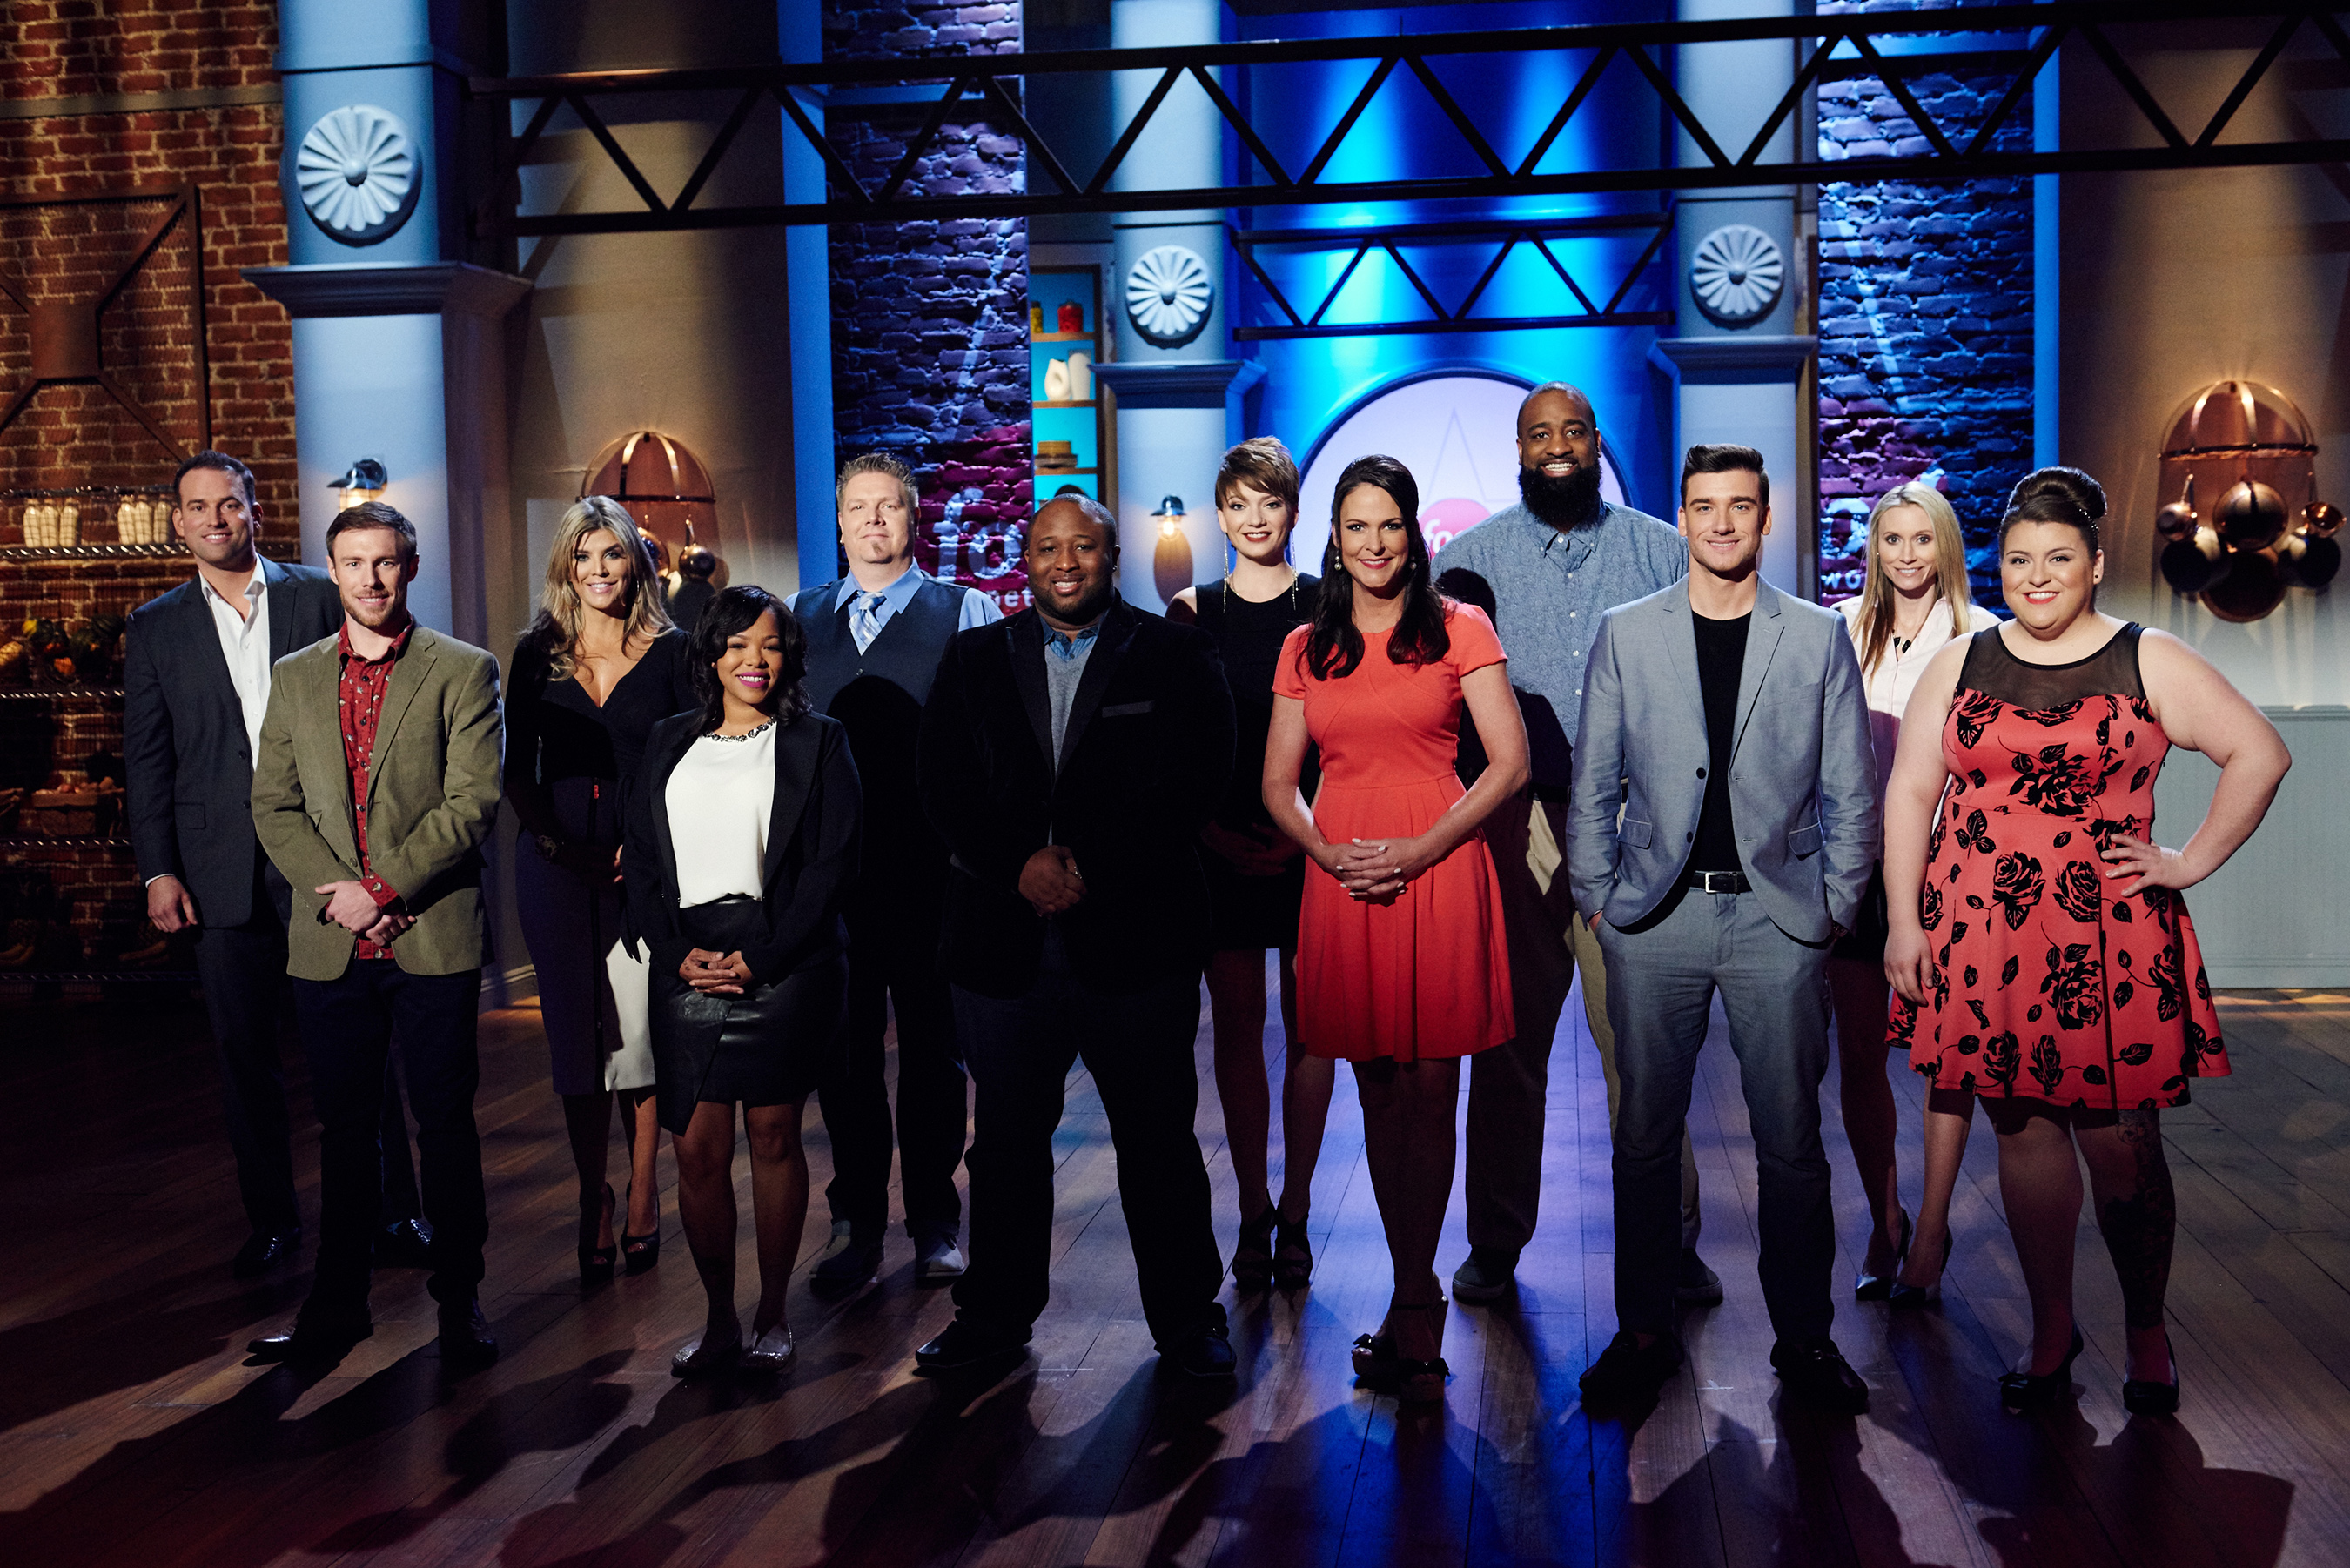 Culinary Hopefuls Compete For Stardom In The Return Of Food Network Star